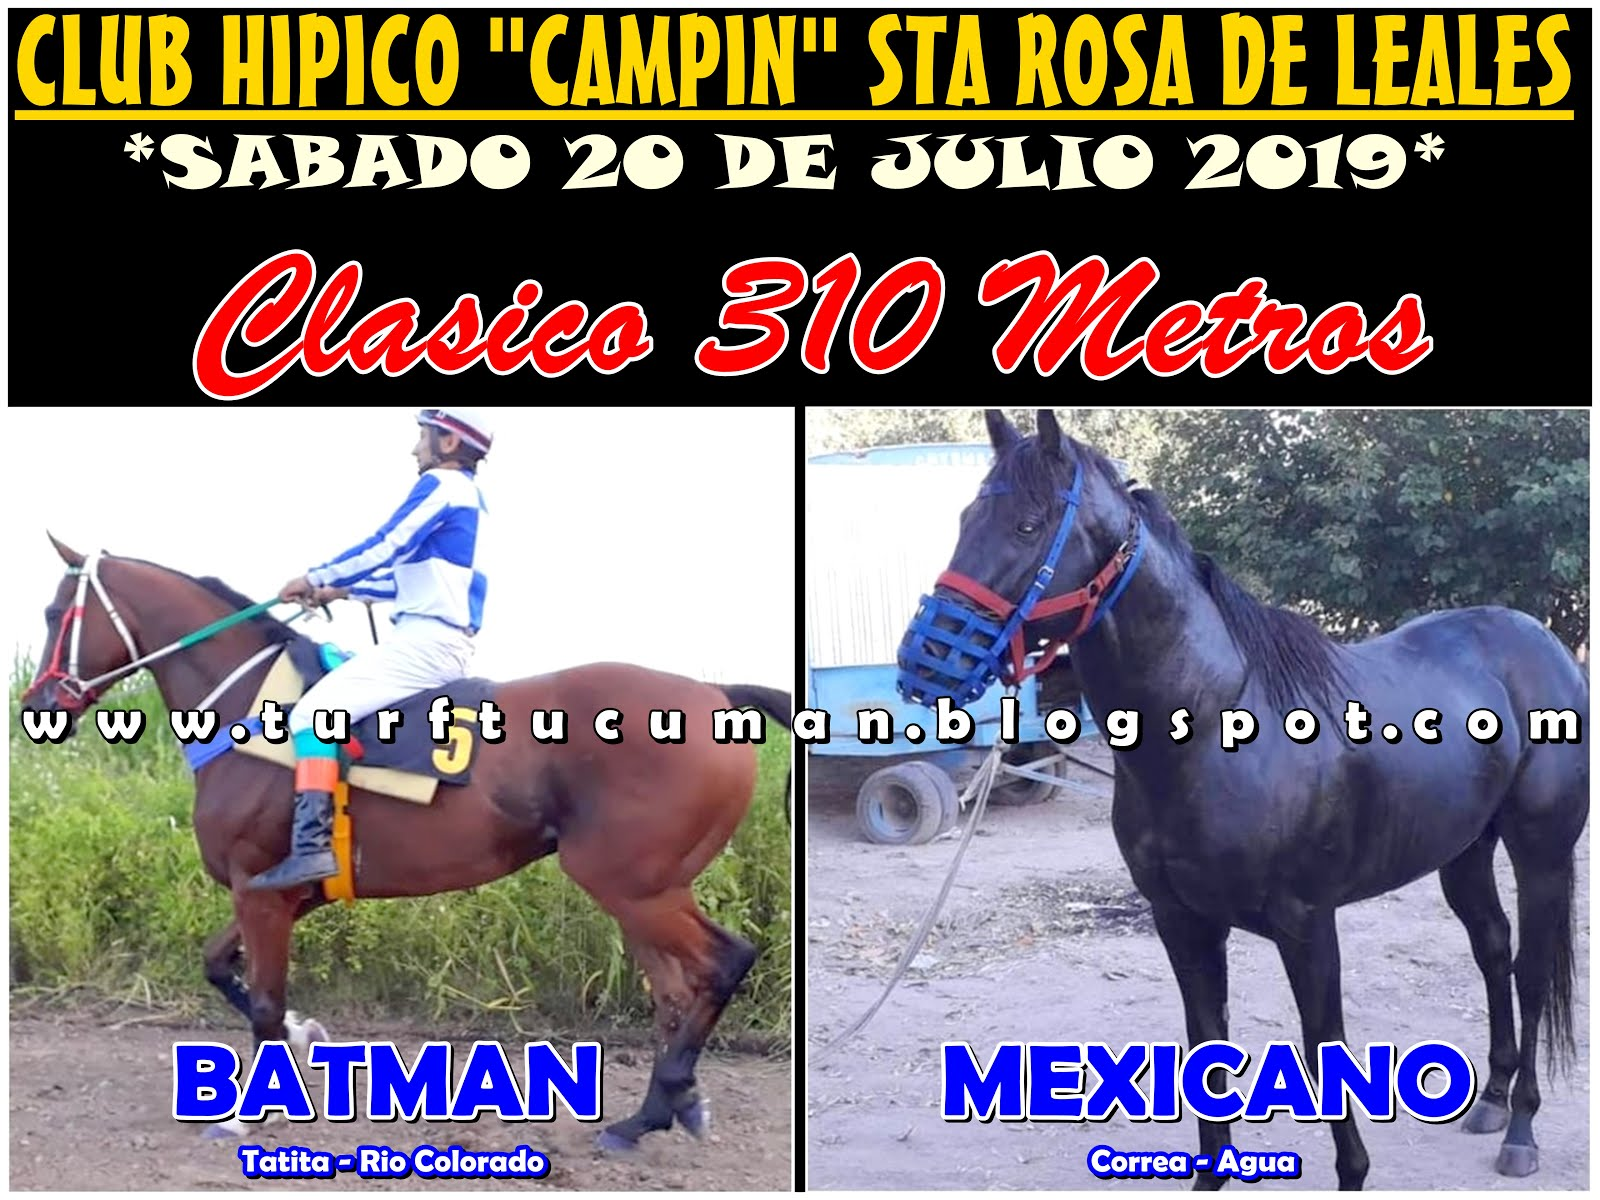 BATMAN VS MAXICANO